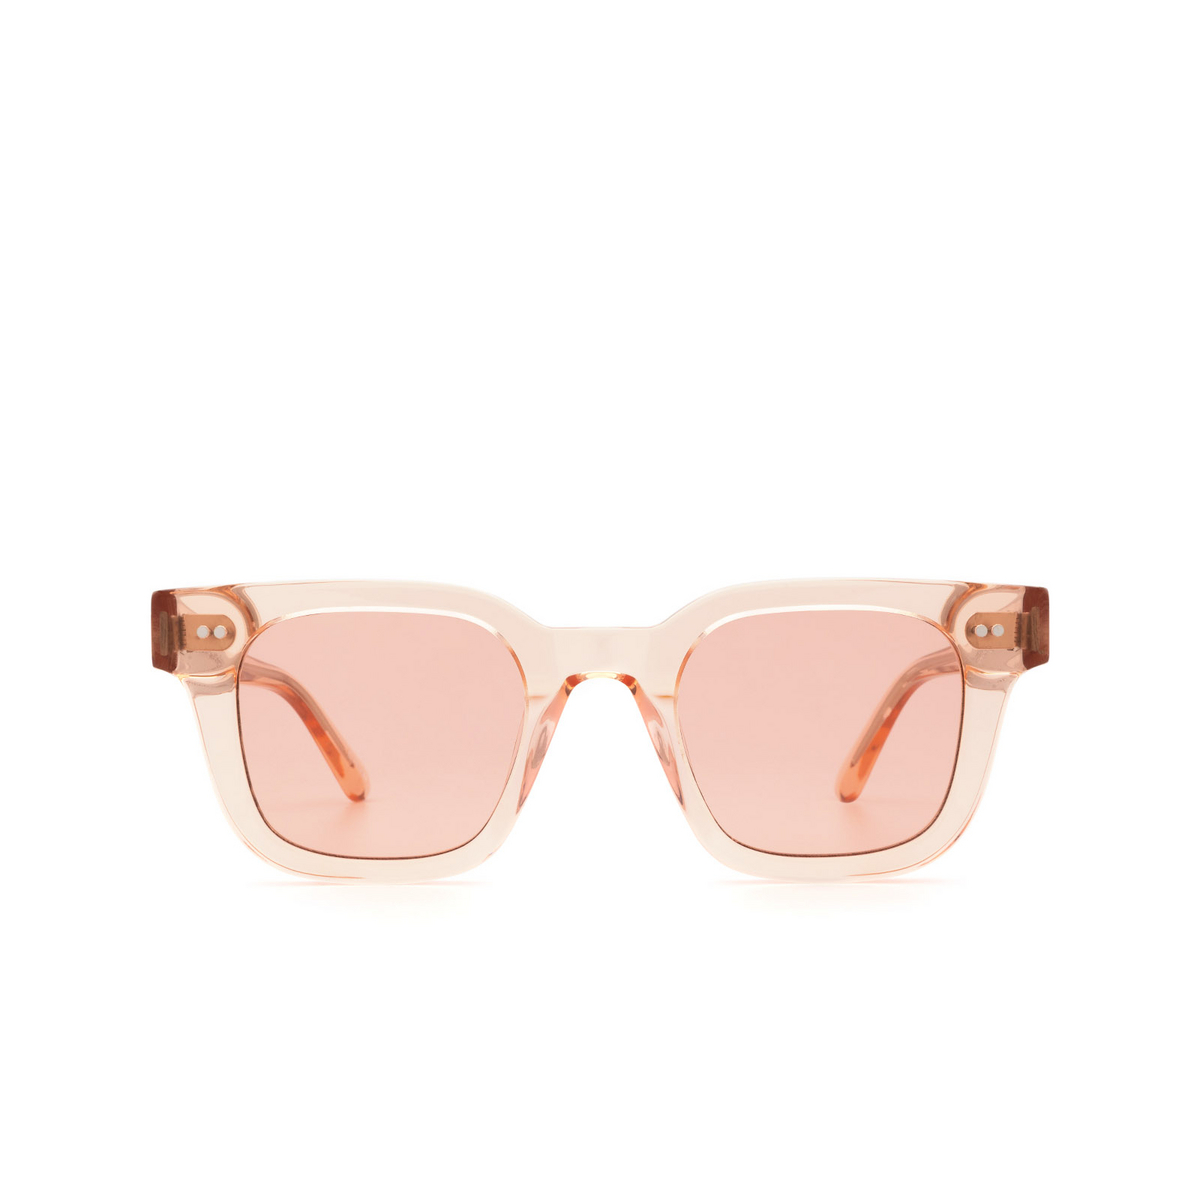 Chimi® Square Sunglasses: 04 color Pink - front view.